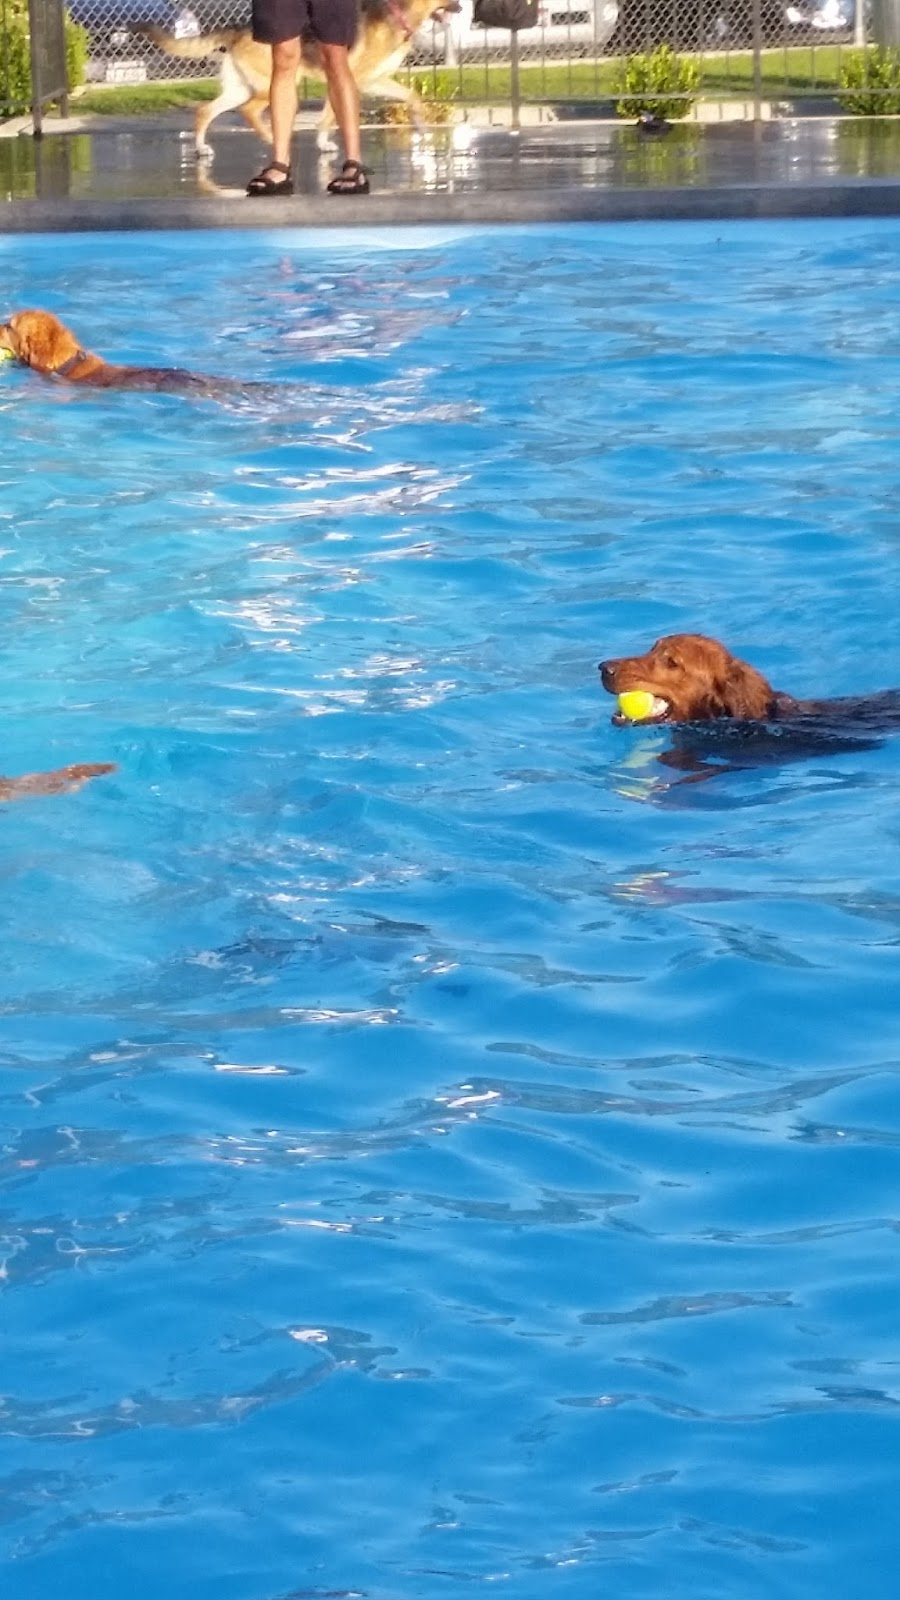 Golden Retriever in a pool